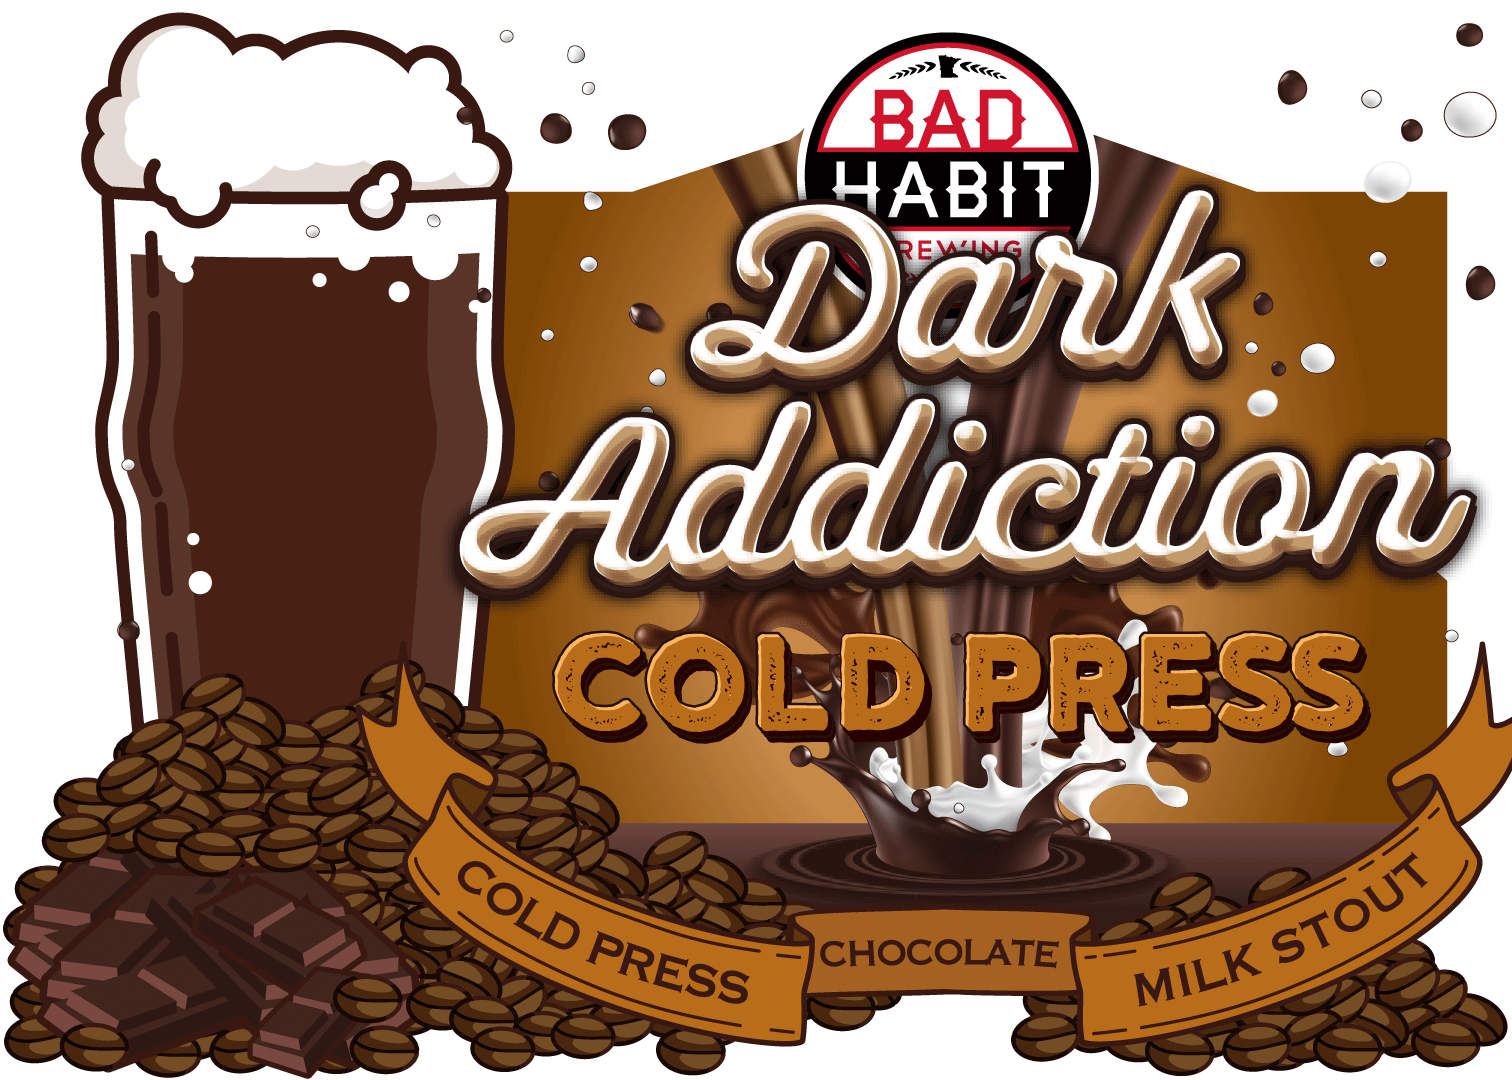 COLD PRESSDARK ADDICTION - Cold Press Coffee Infused Chocolate Milk Stout | 5.2% ABVWe infused our intensely dark, silky smooth chocolatey goodness known as Dark Addiction with loads of delicious cold press coffee.